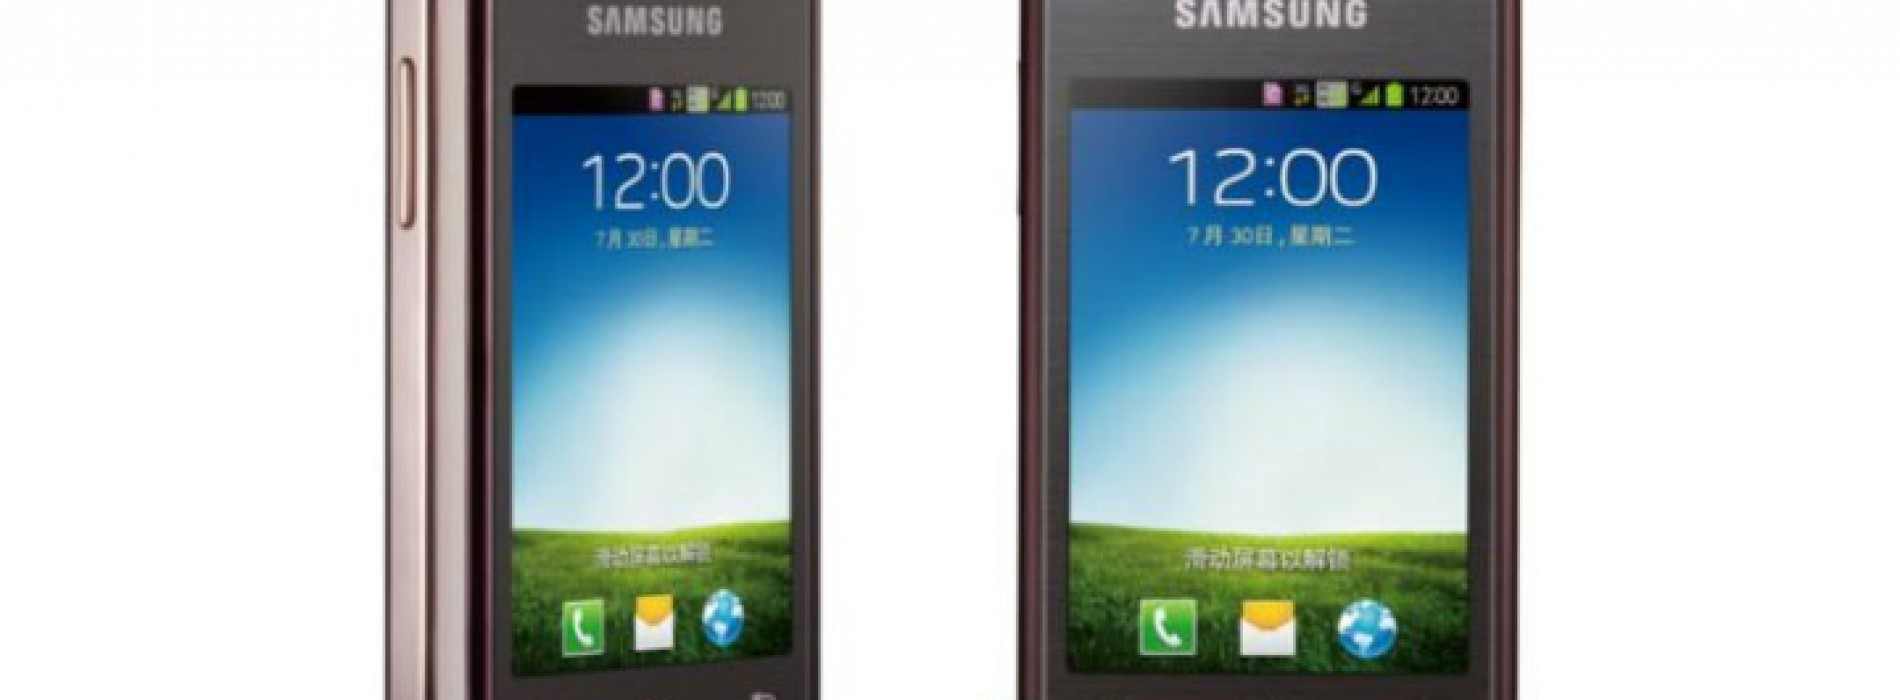 New photos, specs materialize for Samsung Hennessy